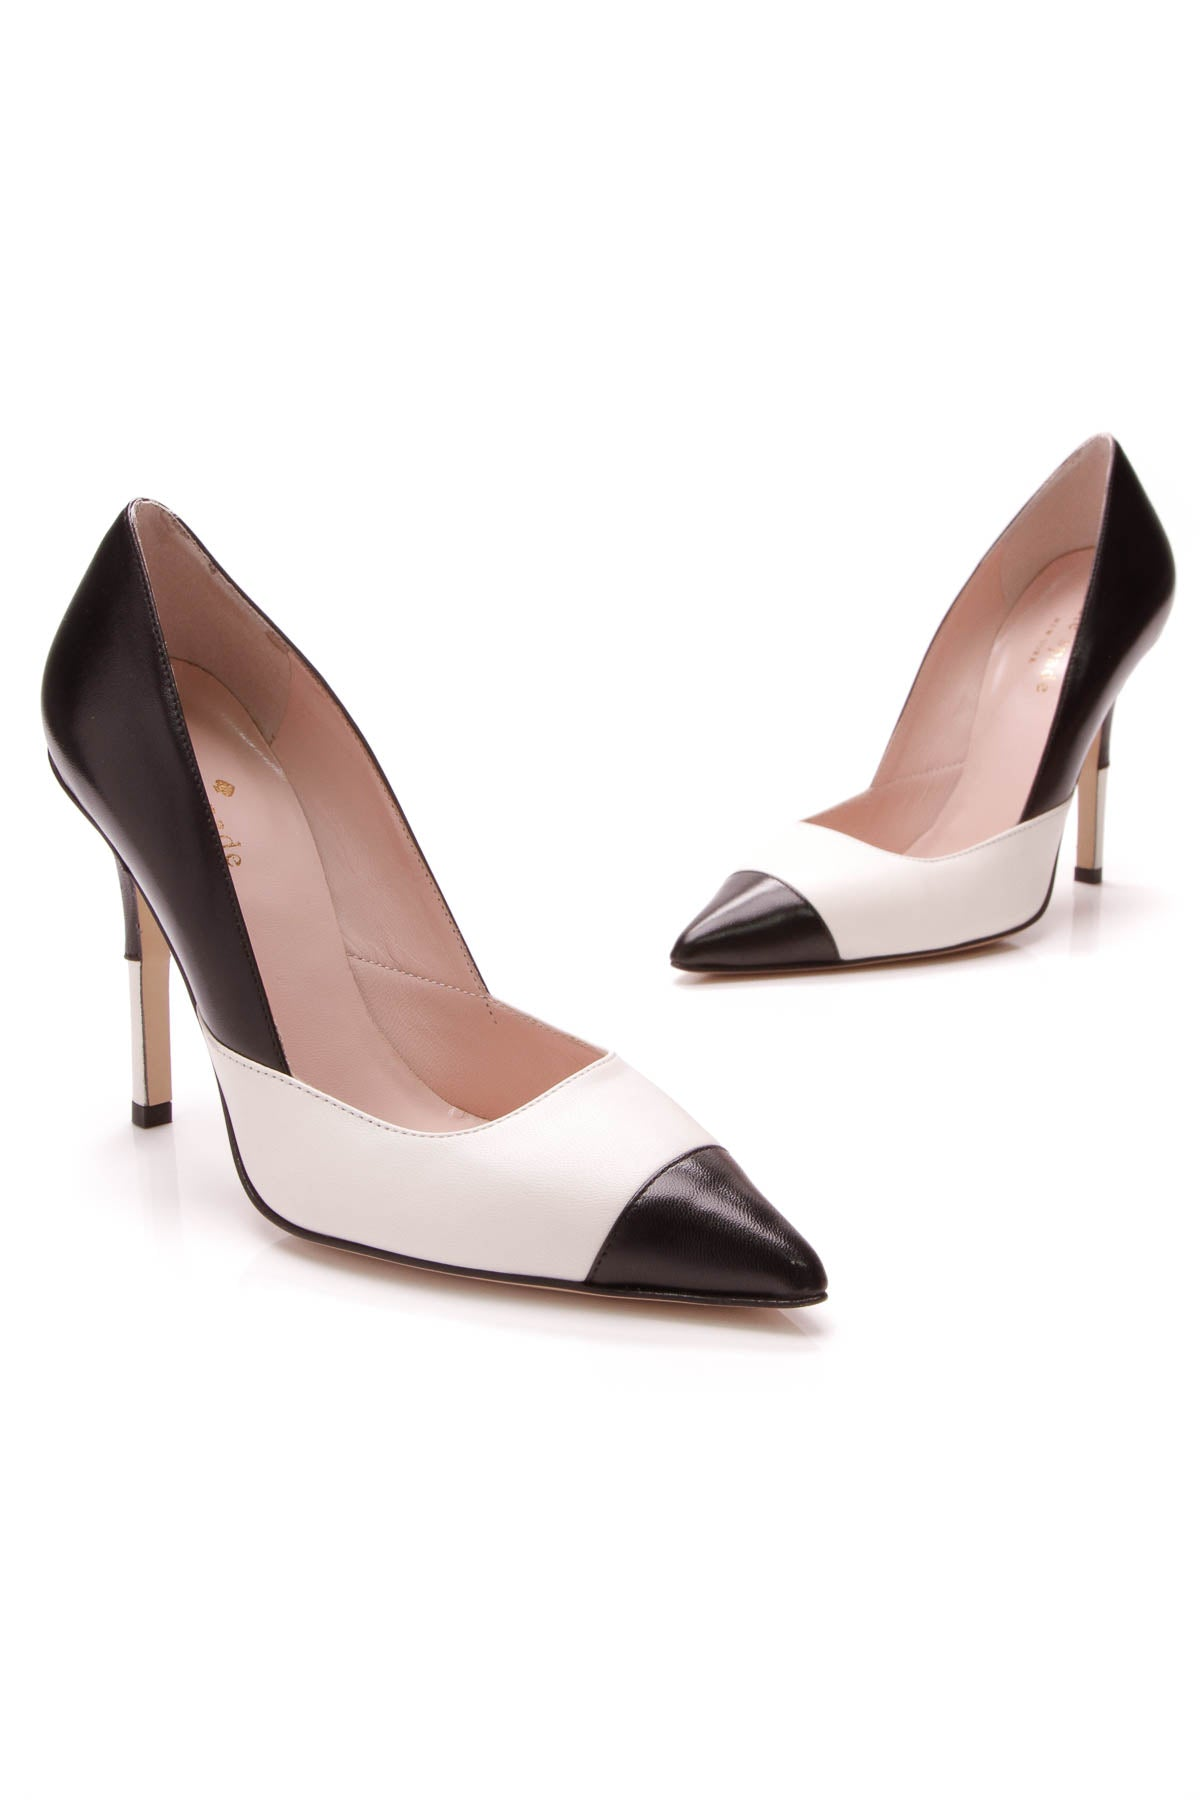 7f2902bd9f15 Kate Spade Lentica Pumps - Black Ivory Size 5 – Couture USA